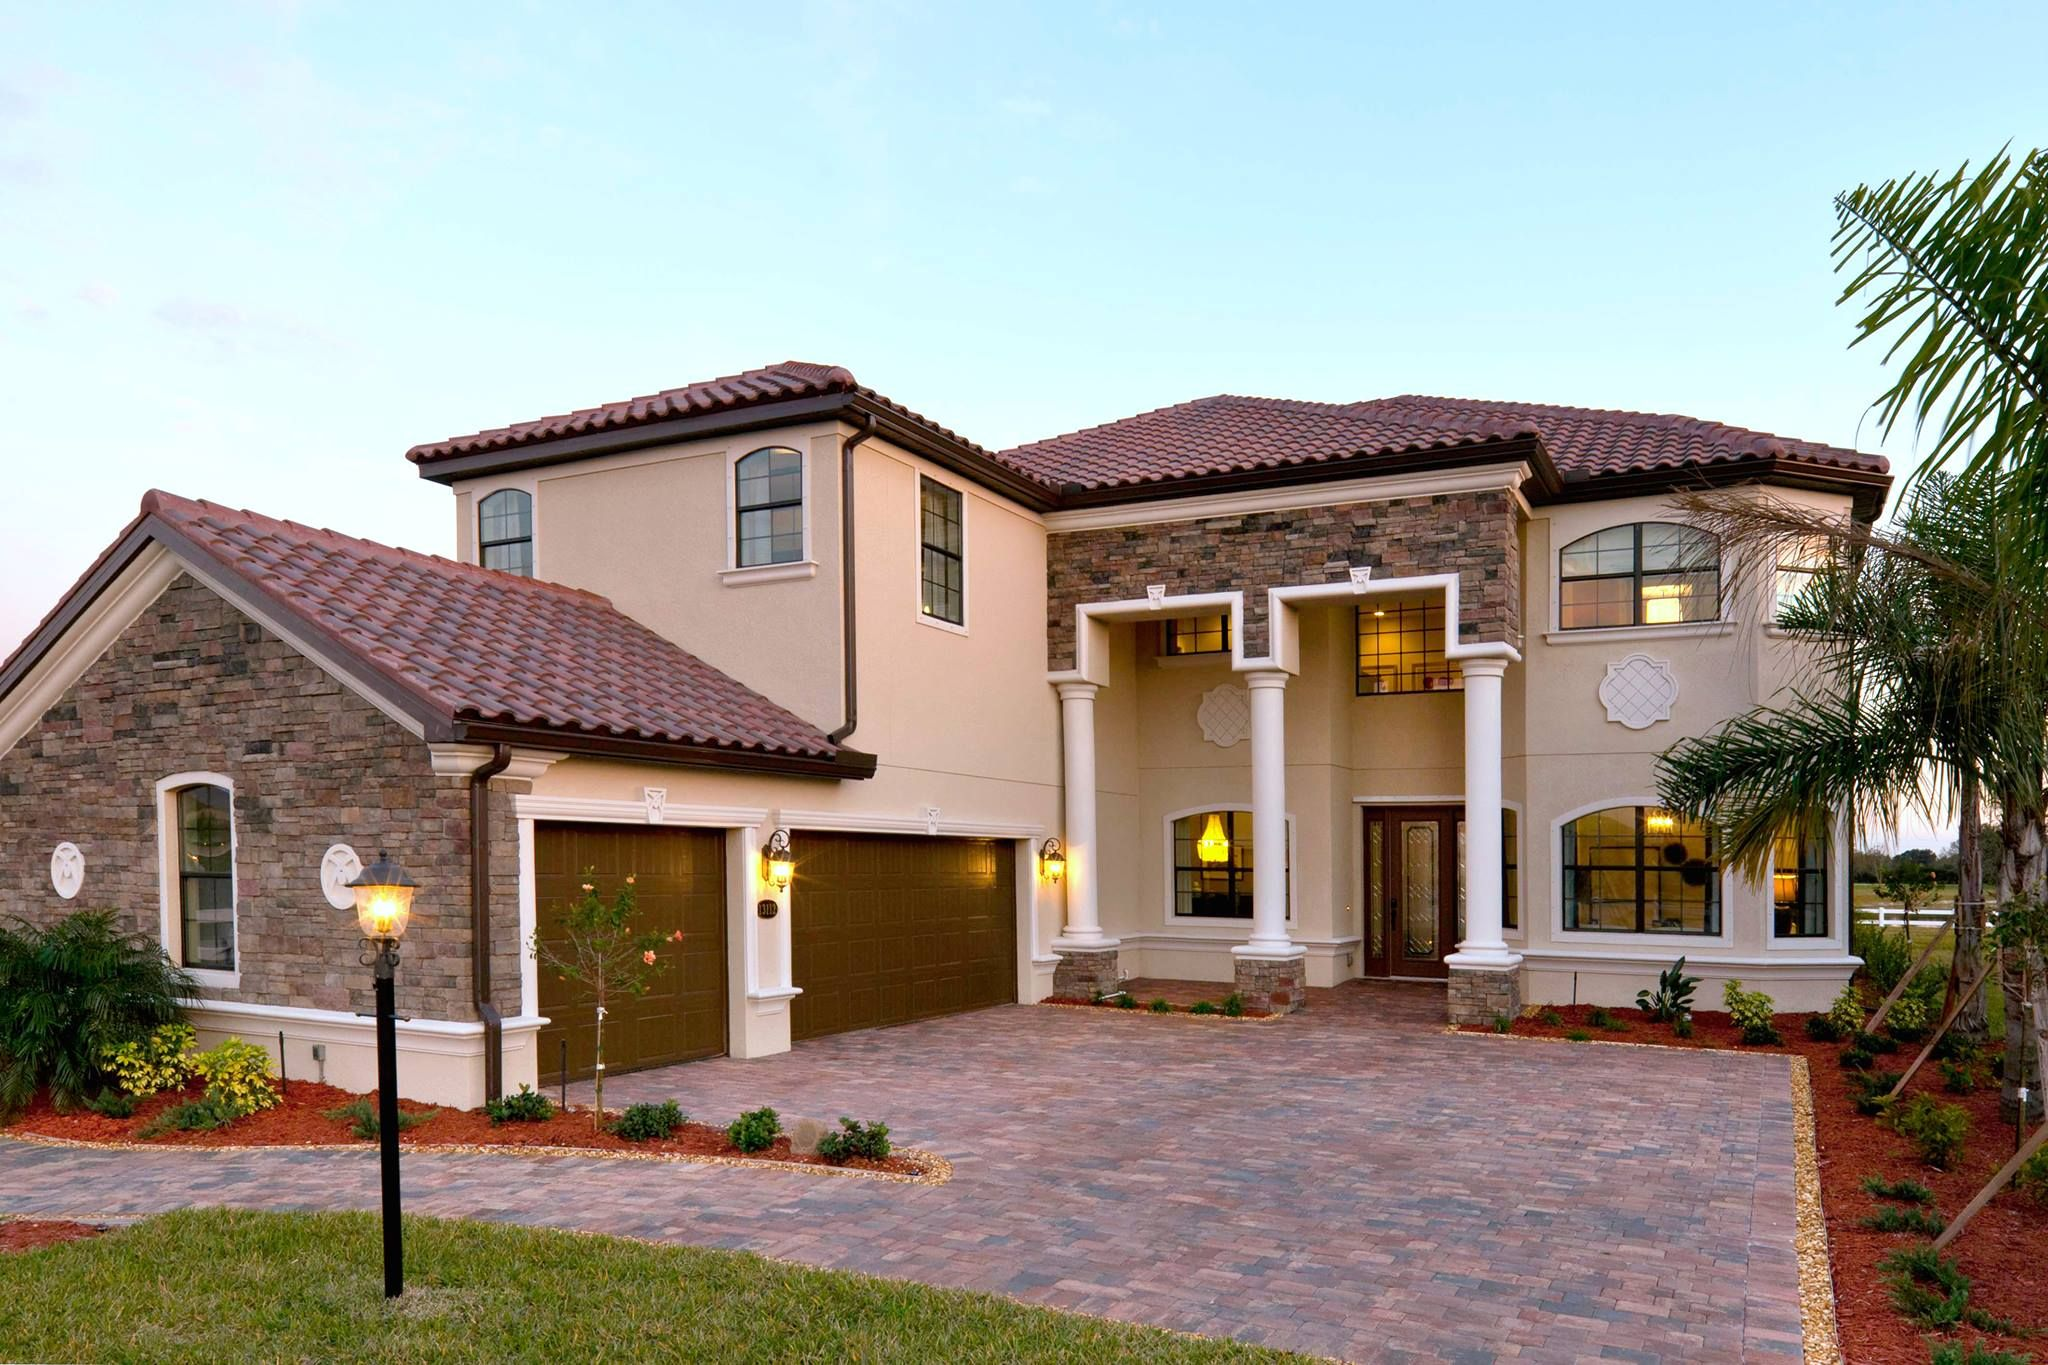 Do You Feel That This Home Has Curb Appeal New Home Communities New Homes House